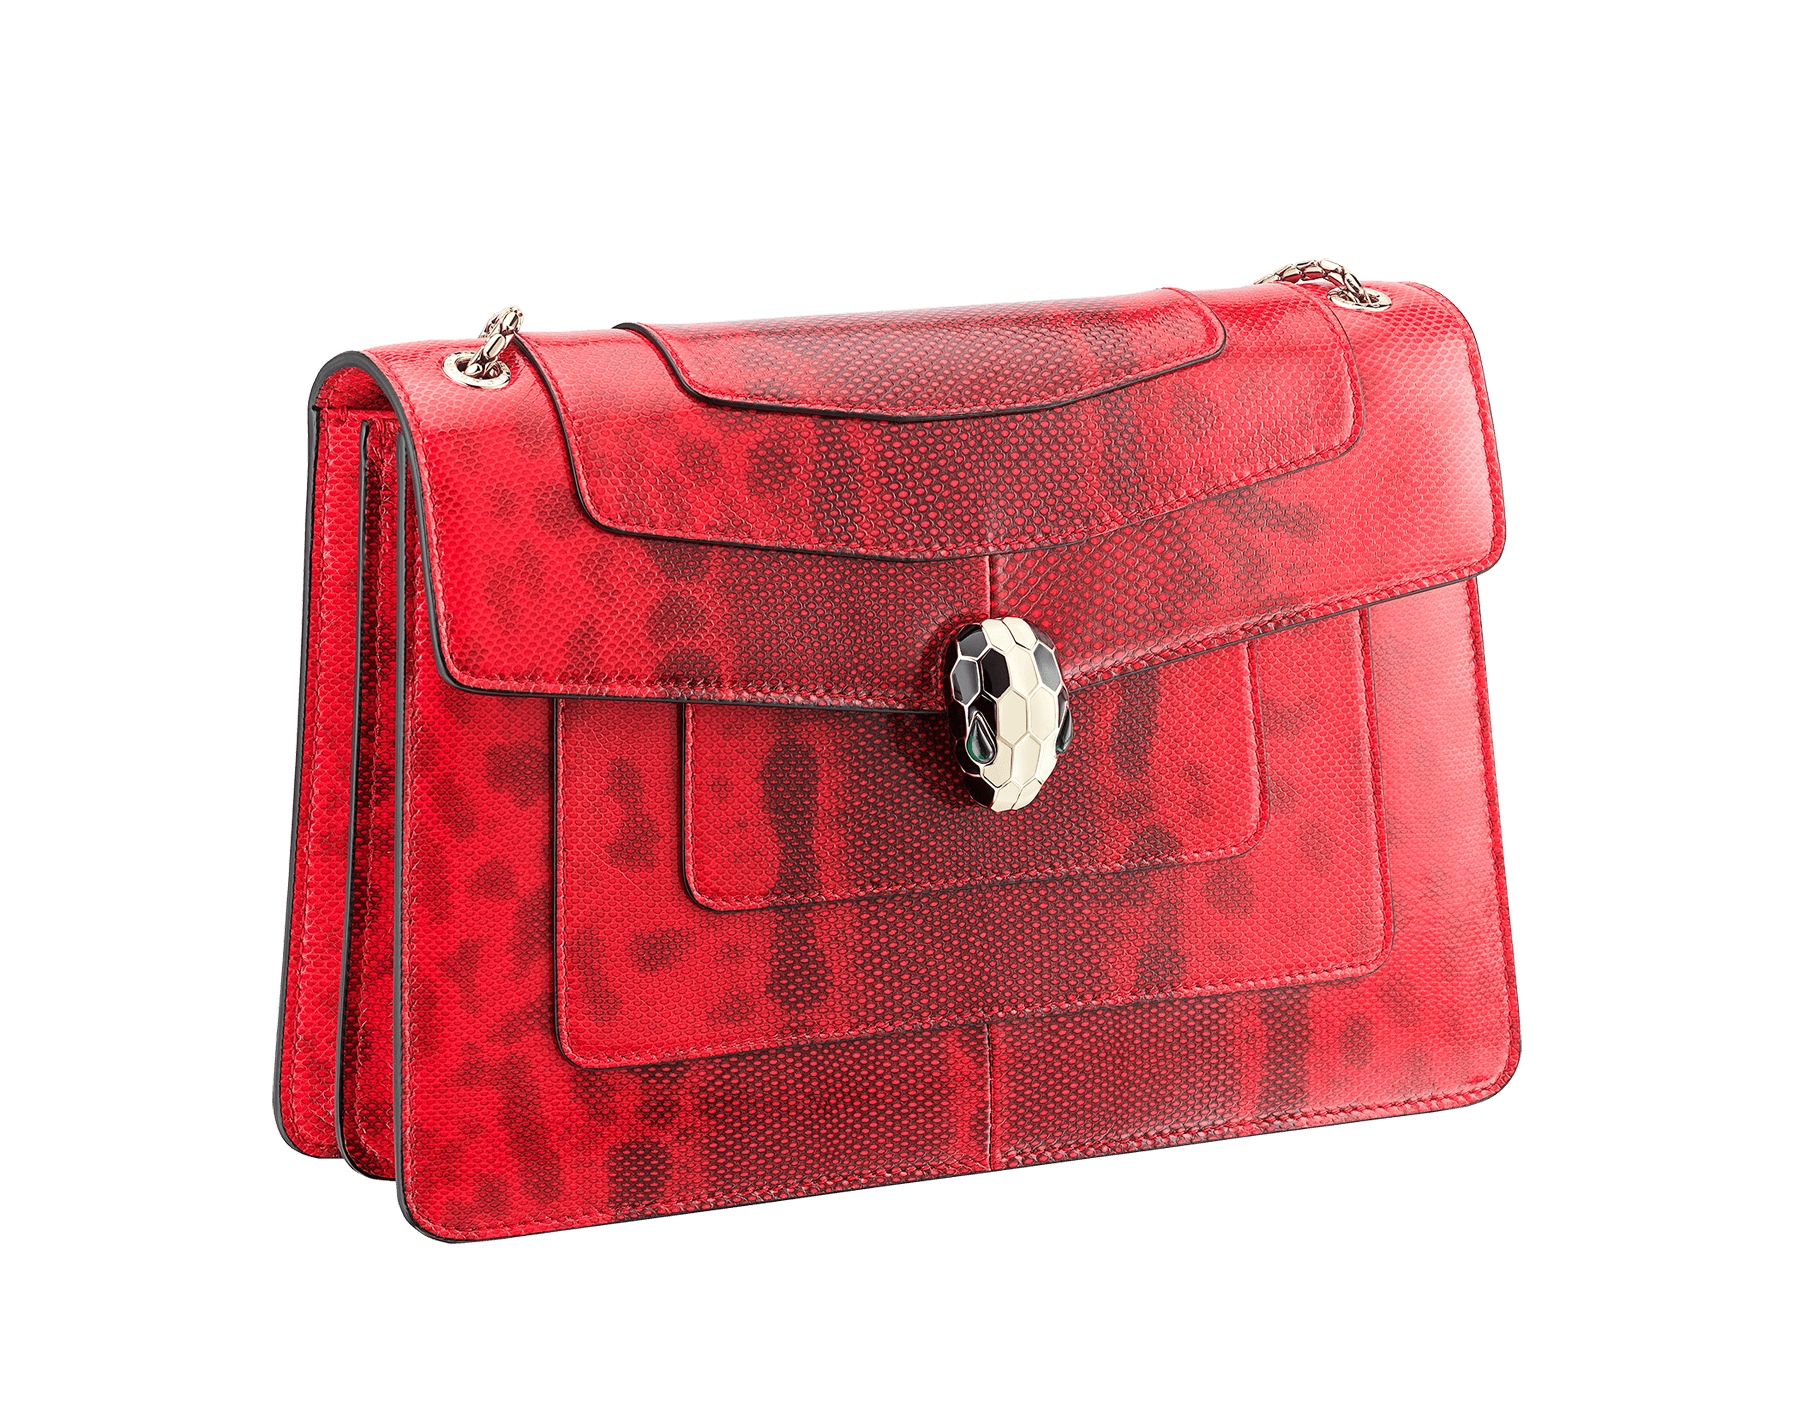 Serpenti Forever shoulder bag in sea star coral shiny karung skin. Snakehead closure in light gold plated brass decorated with black and white enamel, and green malachite eyes. 287918 image 2